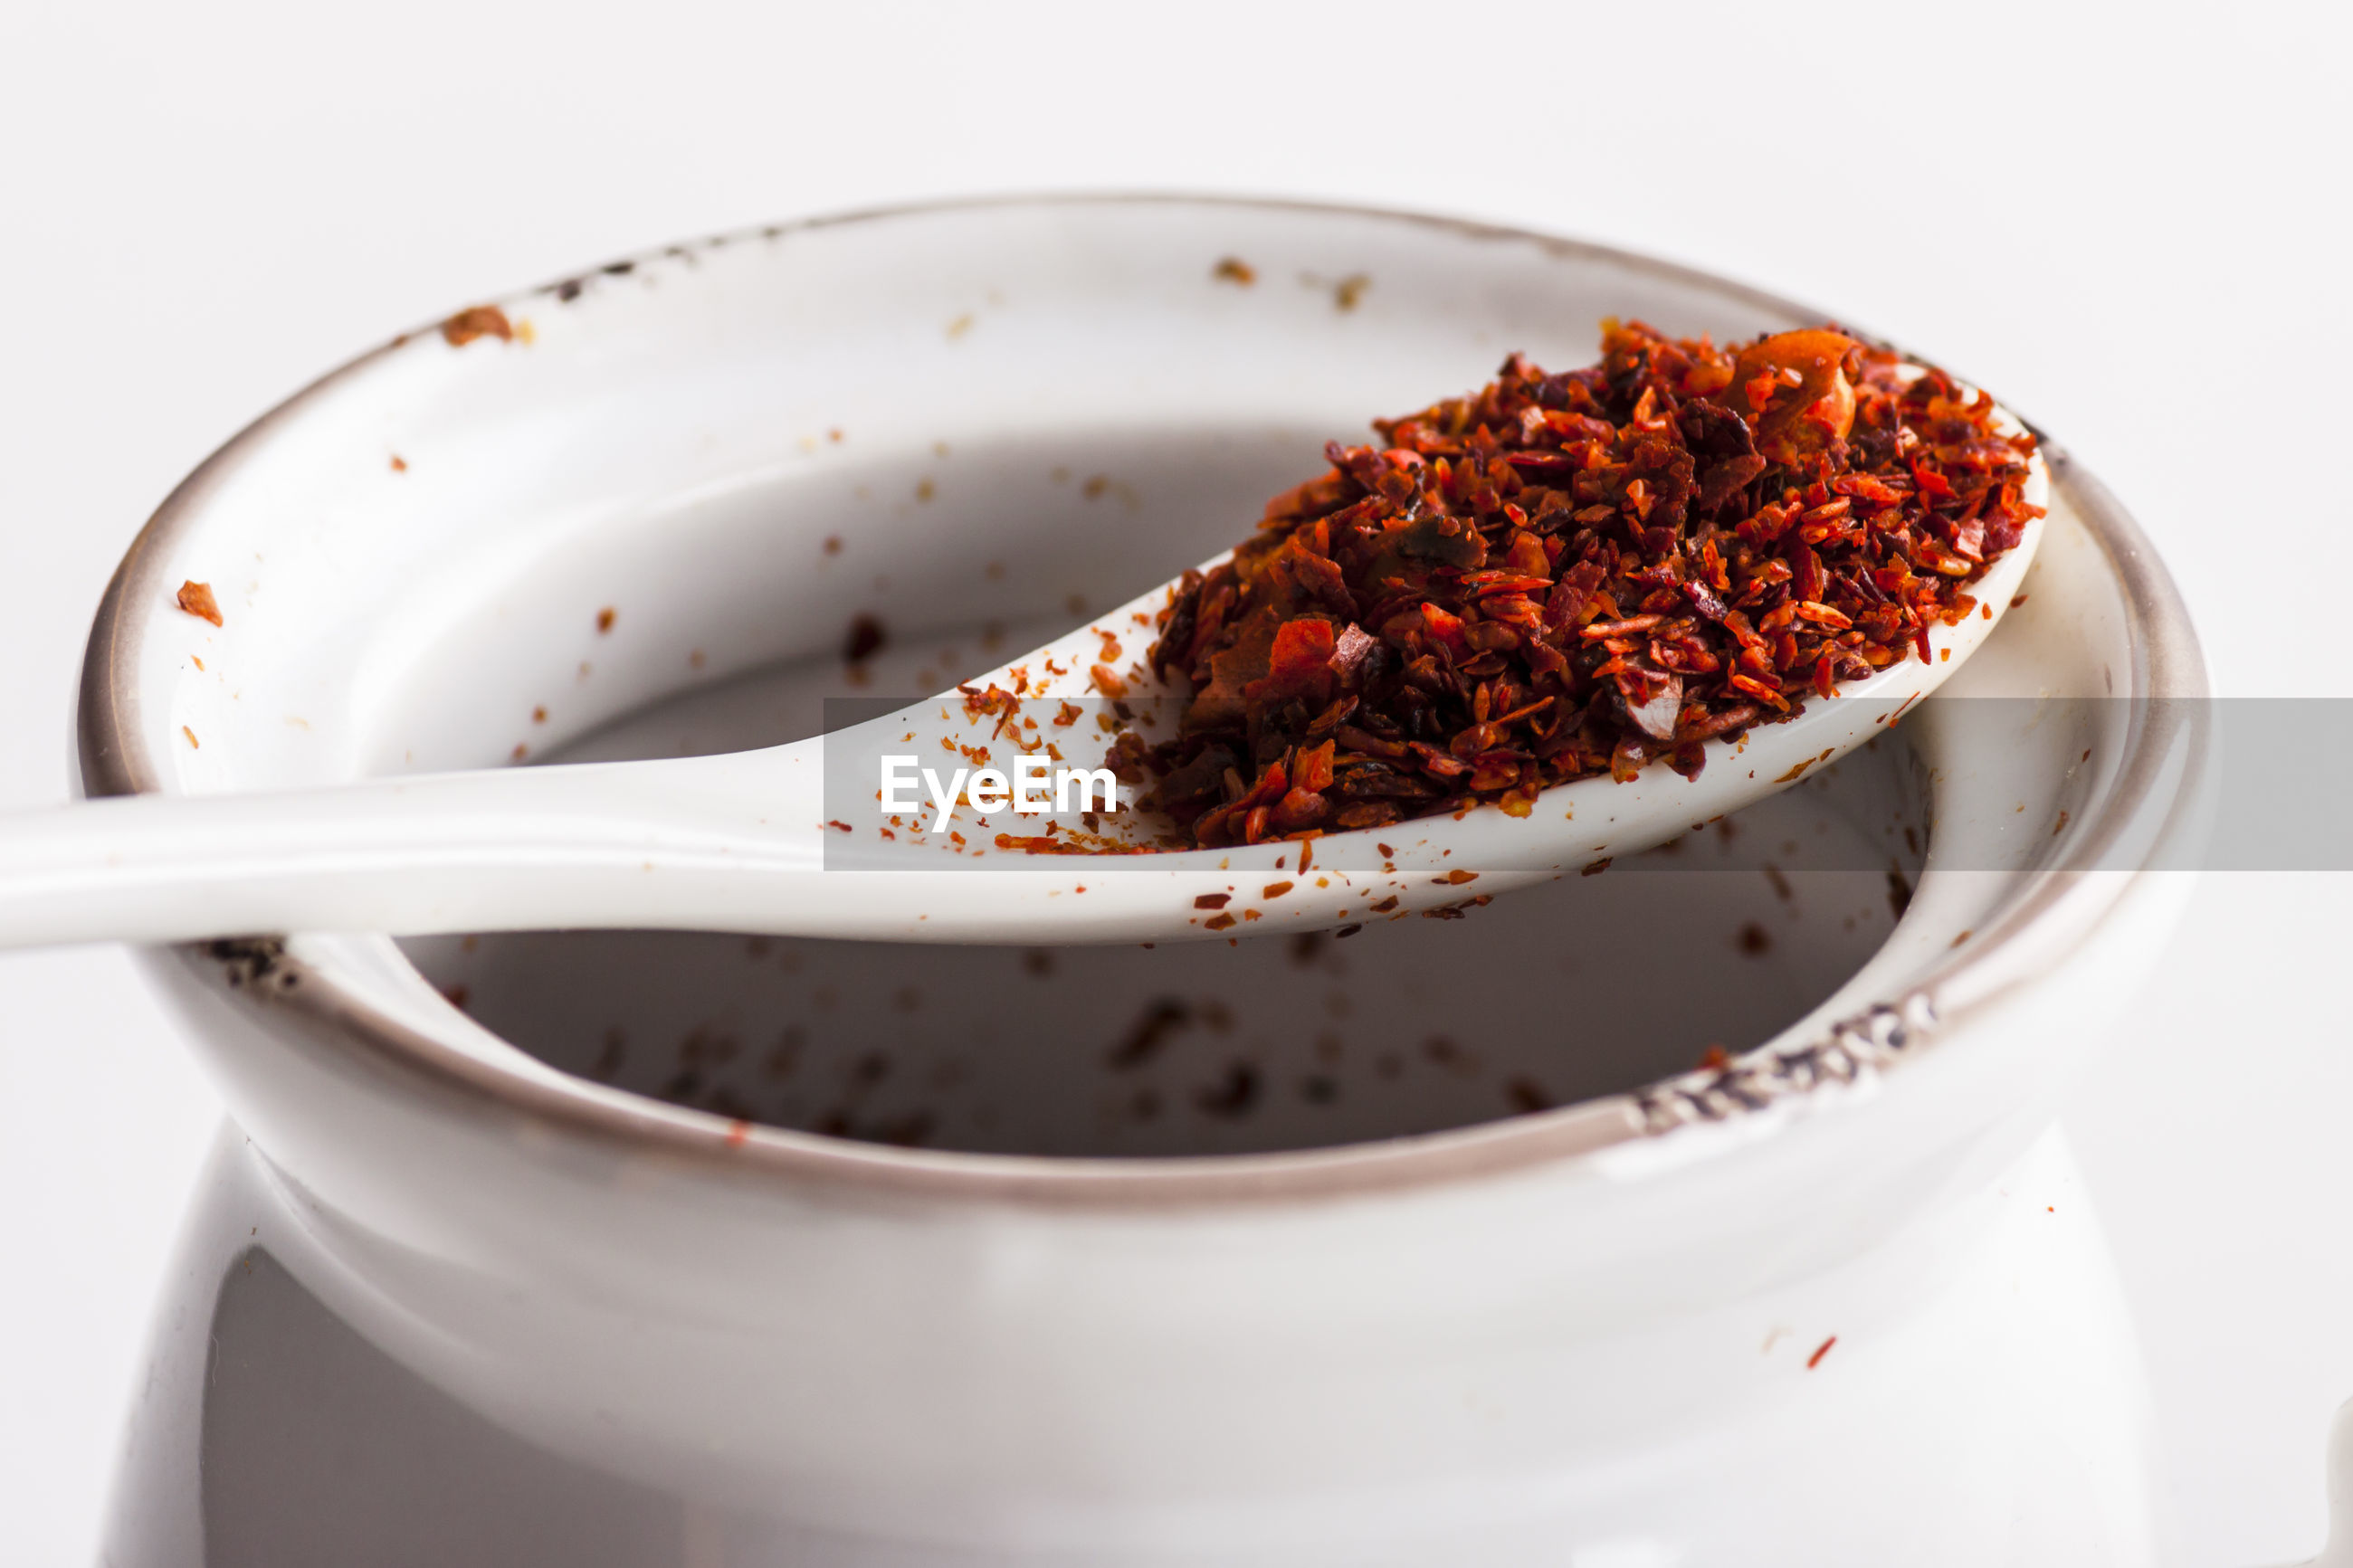 Close-up of chili flakes in spoon against white background